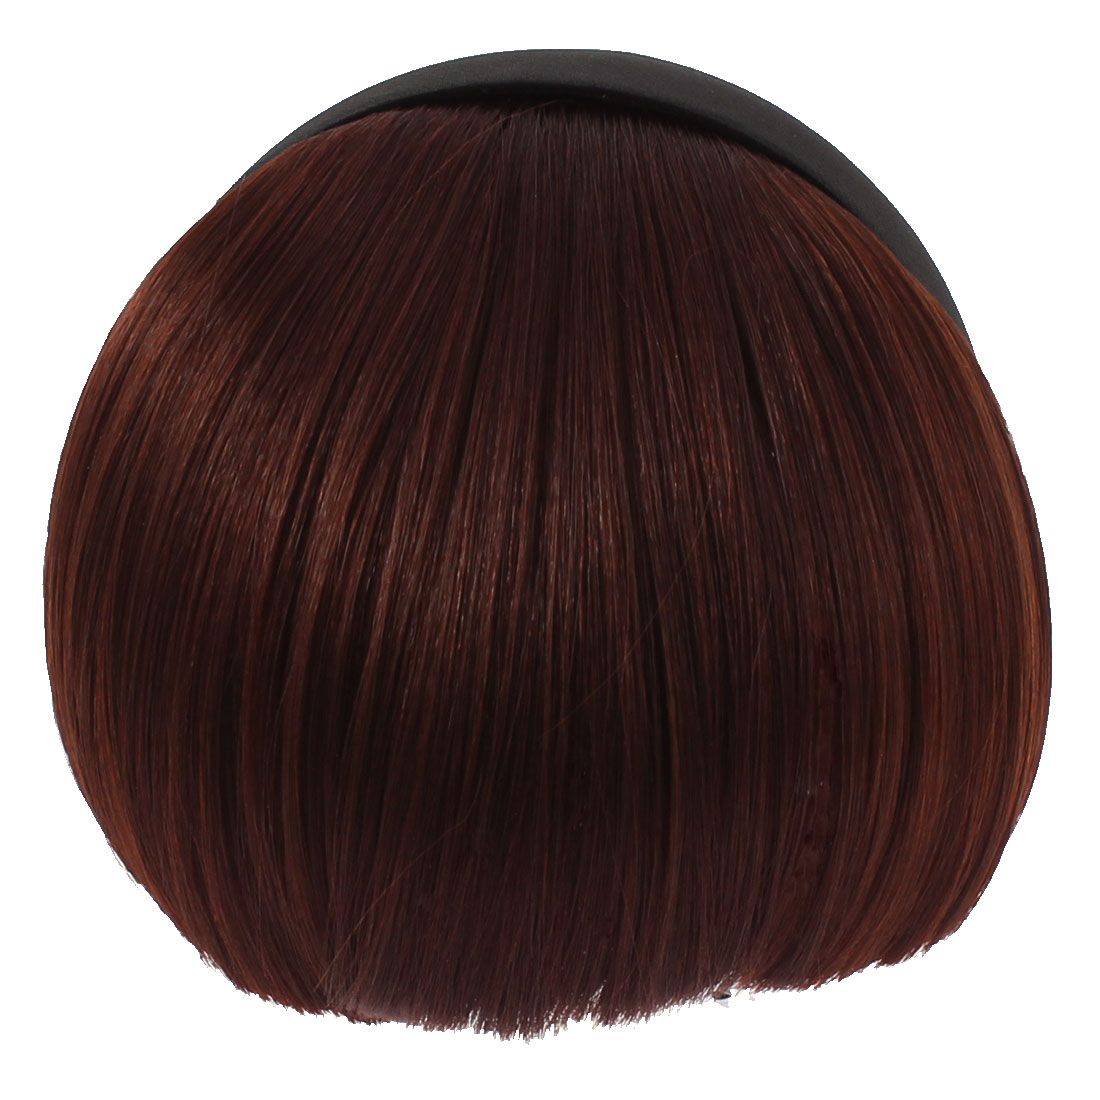 Invisible Traceless Neat Extension False Bangs Wig Piece Hair Clasp Burgundy